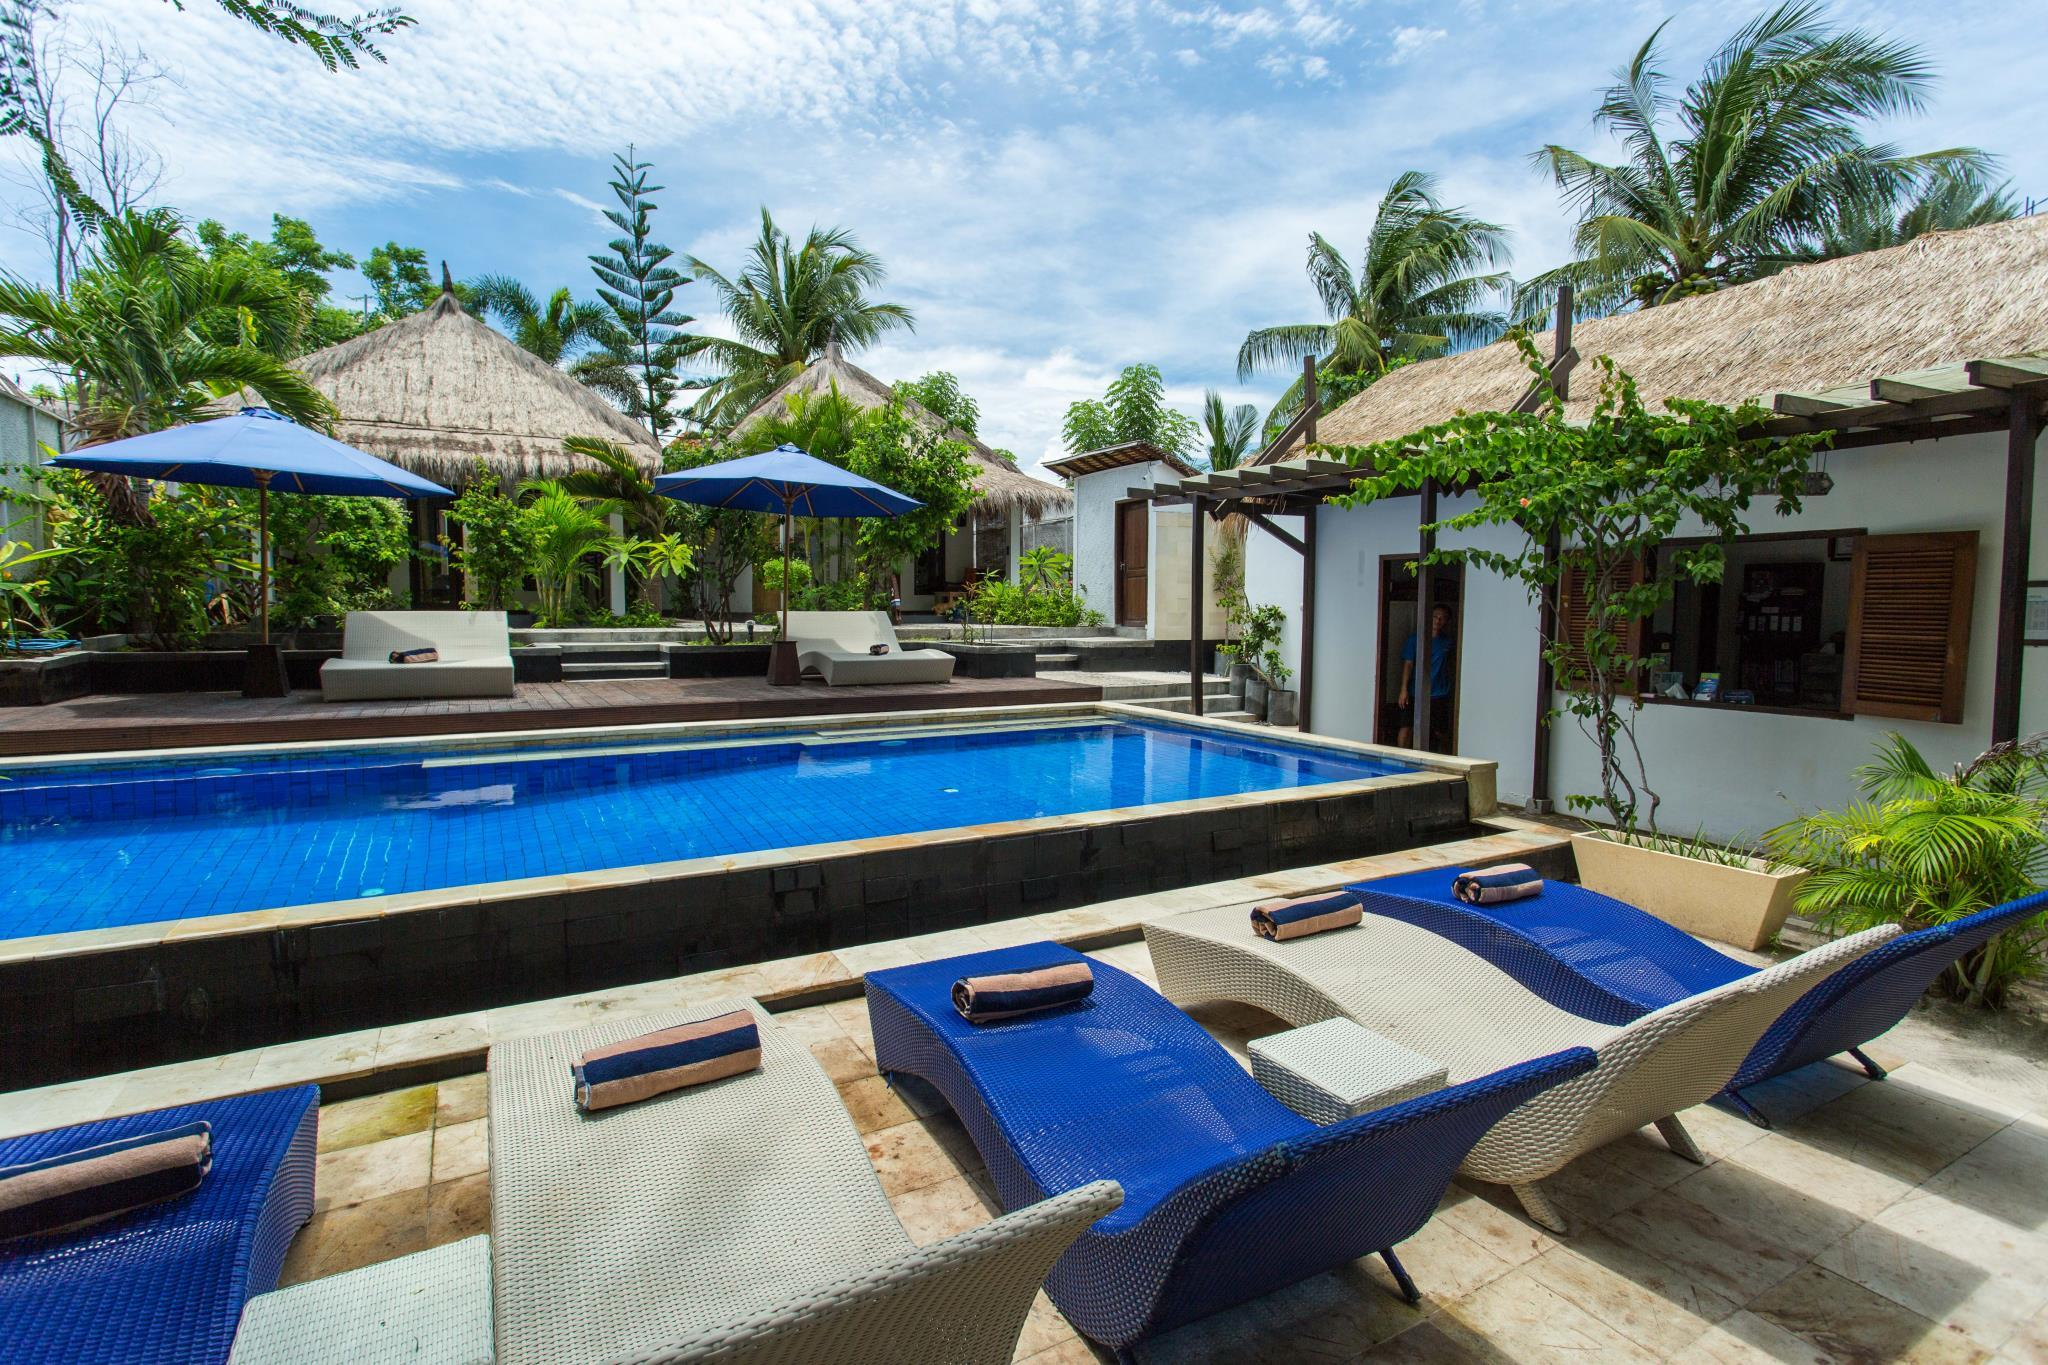 Bungalow - Pool View